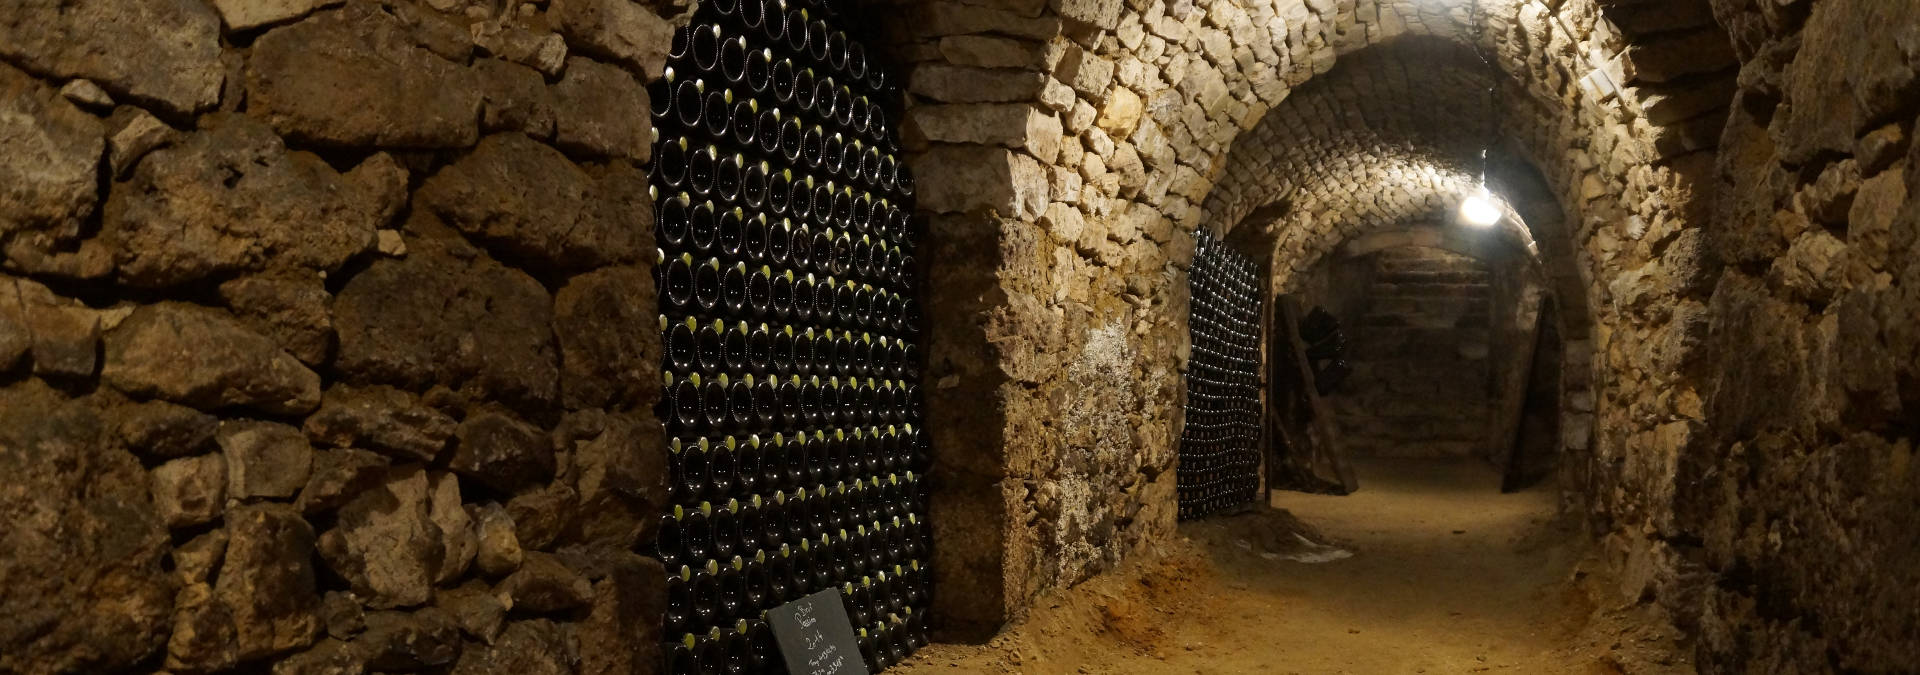 Discovery of our house and its wines